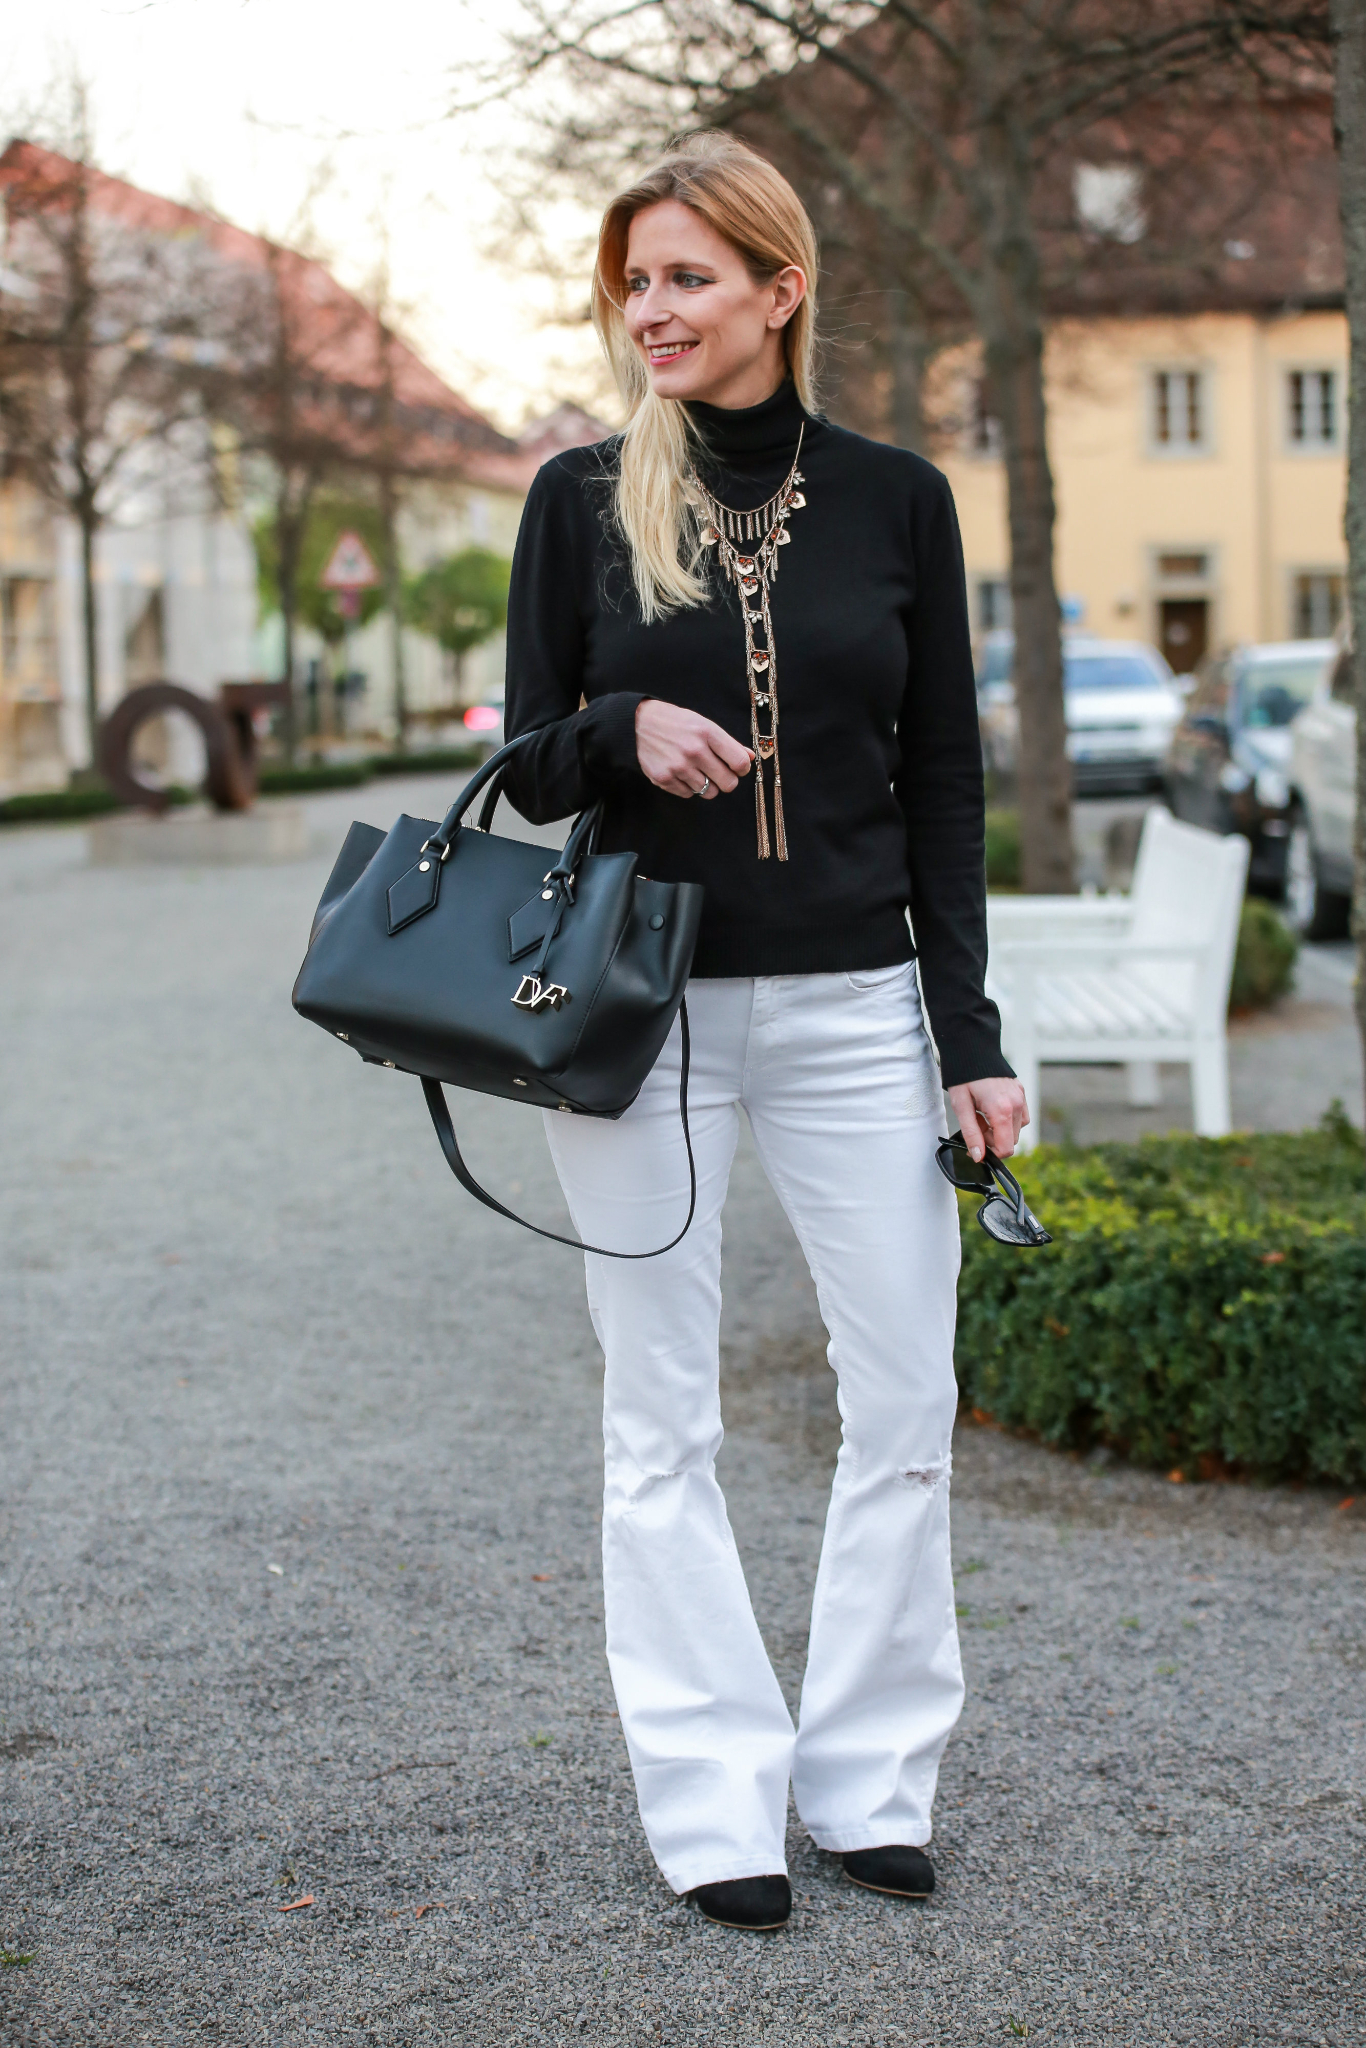 Fashion_Outfit_70`_x_DvF-56